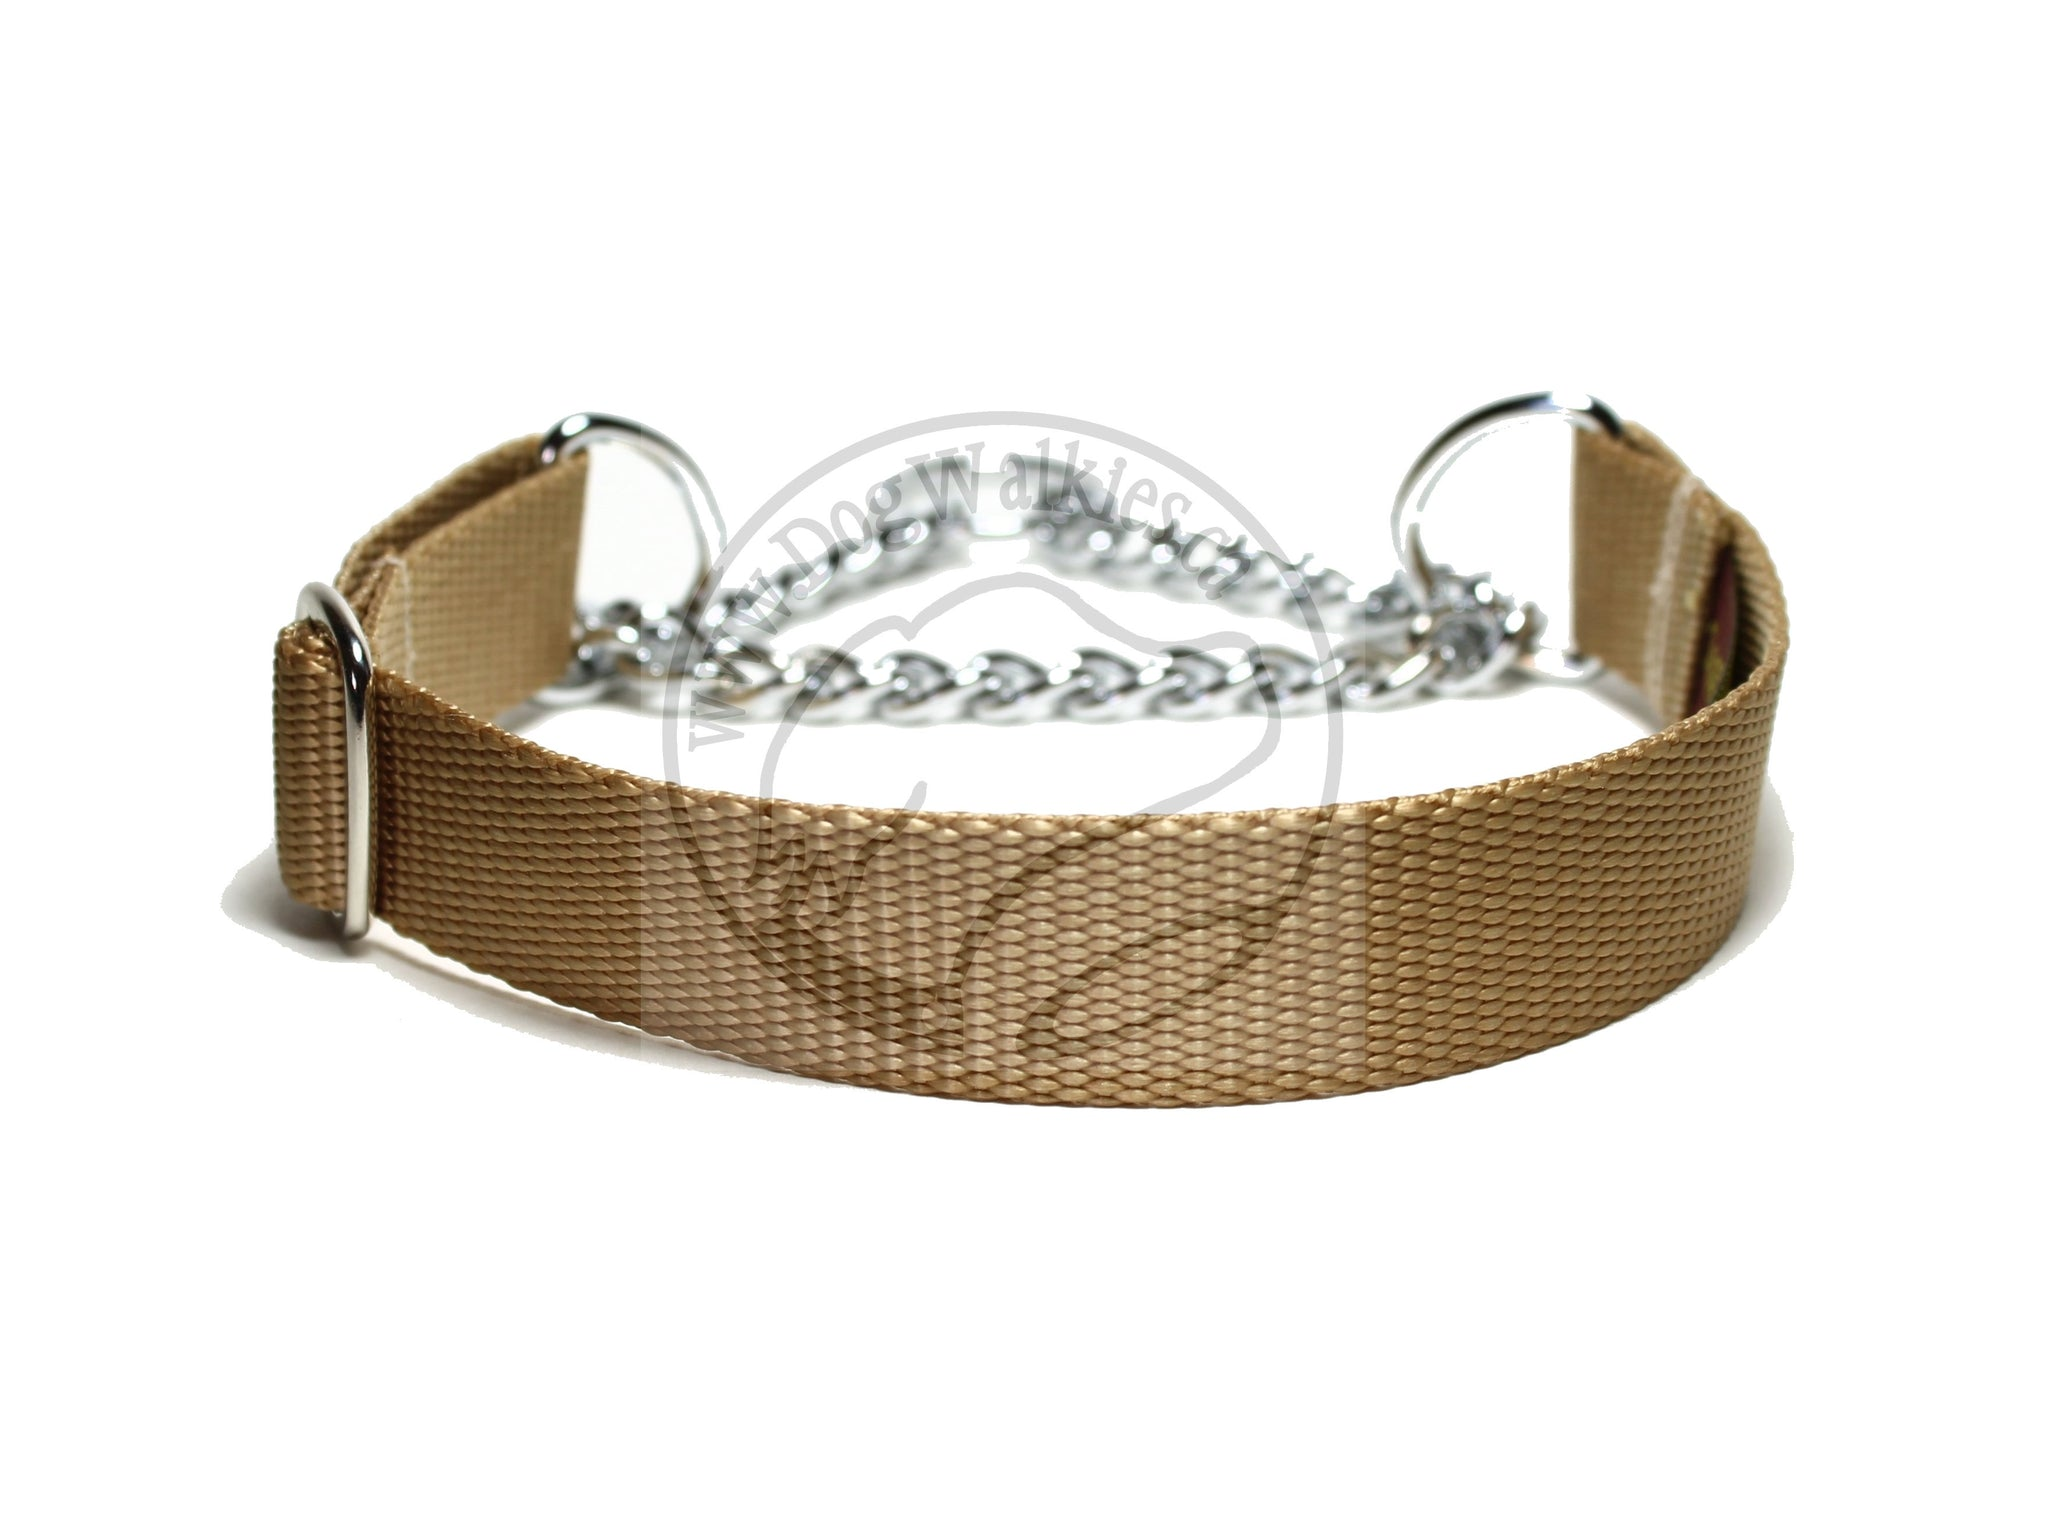 "Chain Martingale Dog Collar 1"" (25mm) wide; Simple - Elegant - Strong"